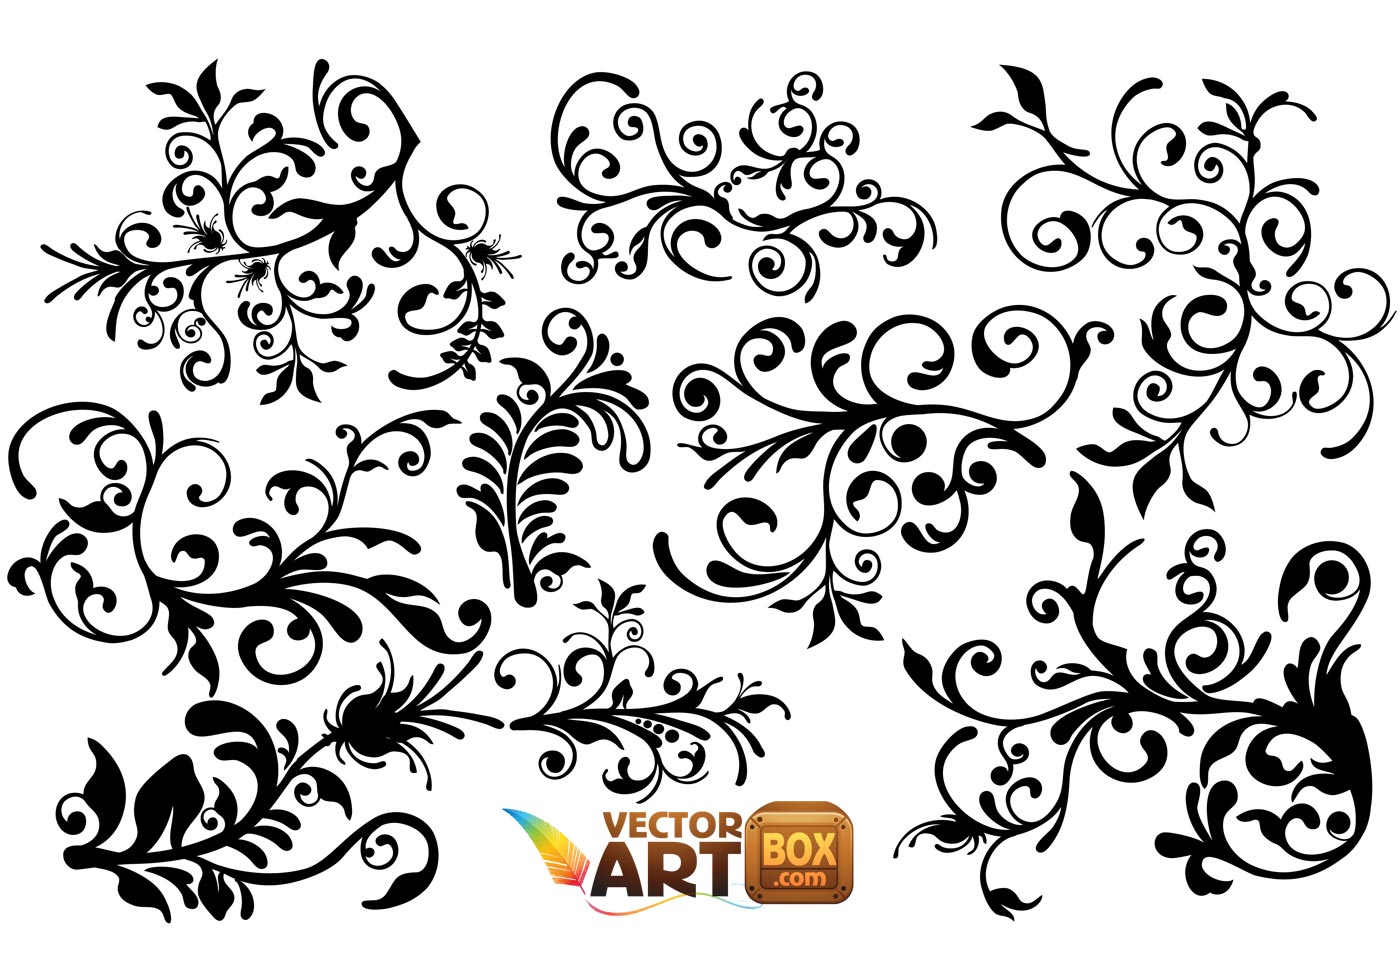 Clipart Free Vector Art - (39962 Free Downloads)